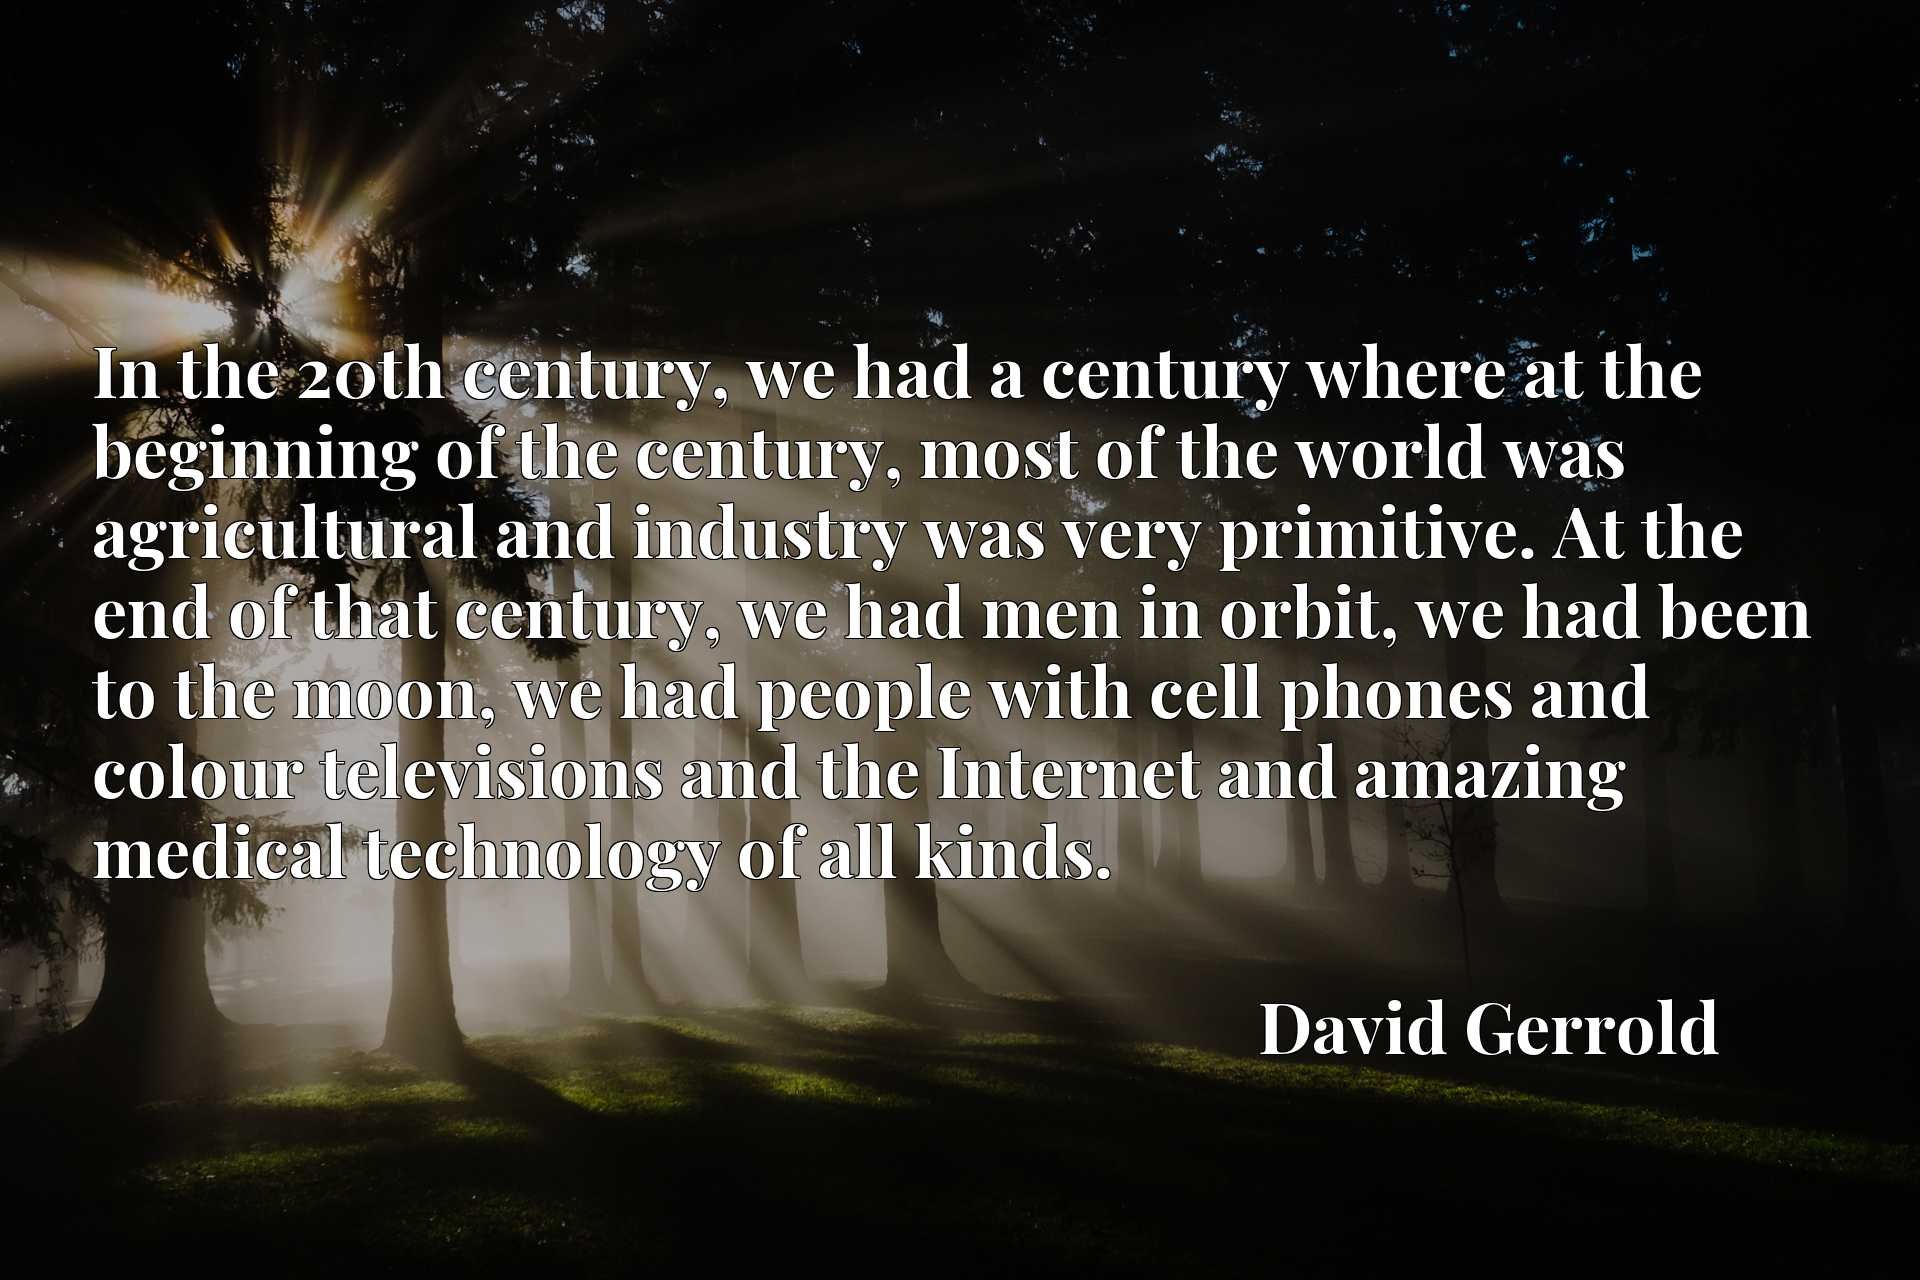 In the 20th century, we had a century where at the beginning of the century, most of the world was agricultural and industry was very primitive. At the end of that century, we had men in orbit, we had been to the moon, we had people with cell phones and colour televisions and the Internet and amazing medical technology of all kinds.